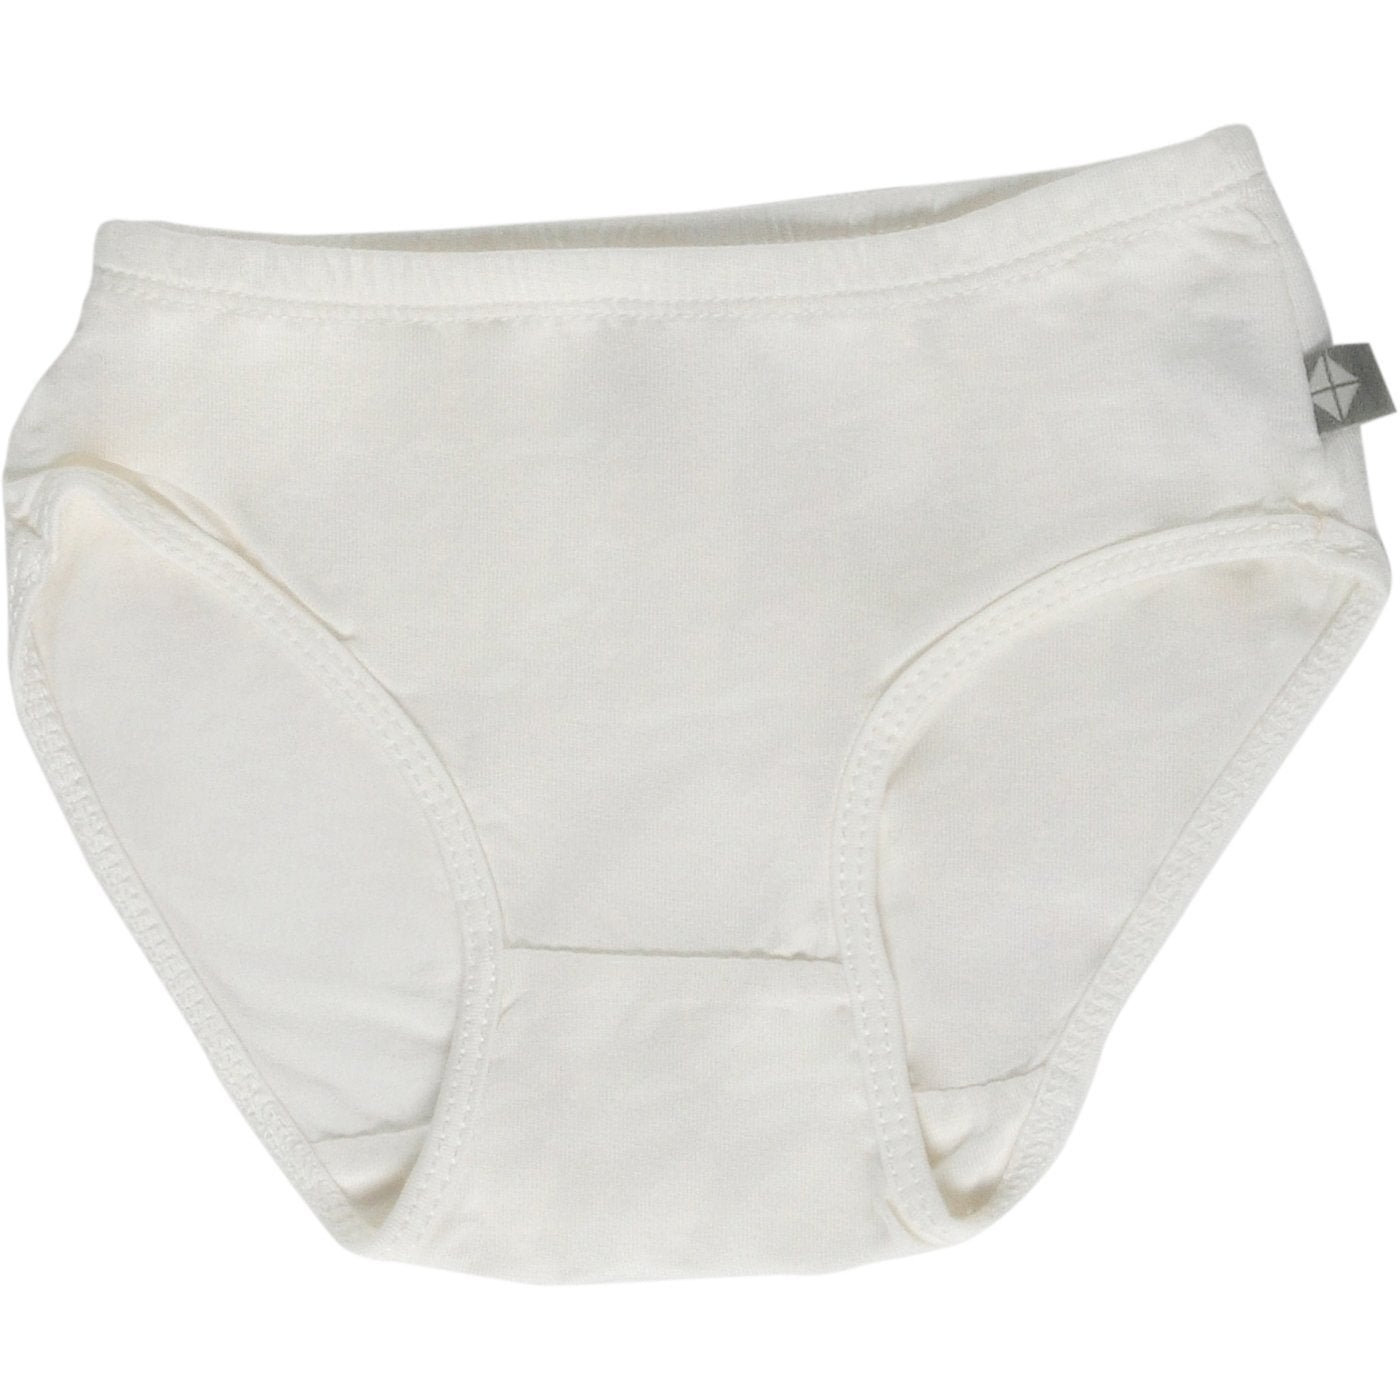 Toddler Bamboo Undies in Cloud